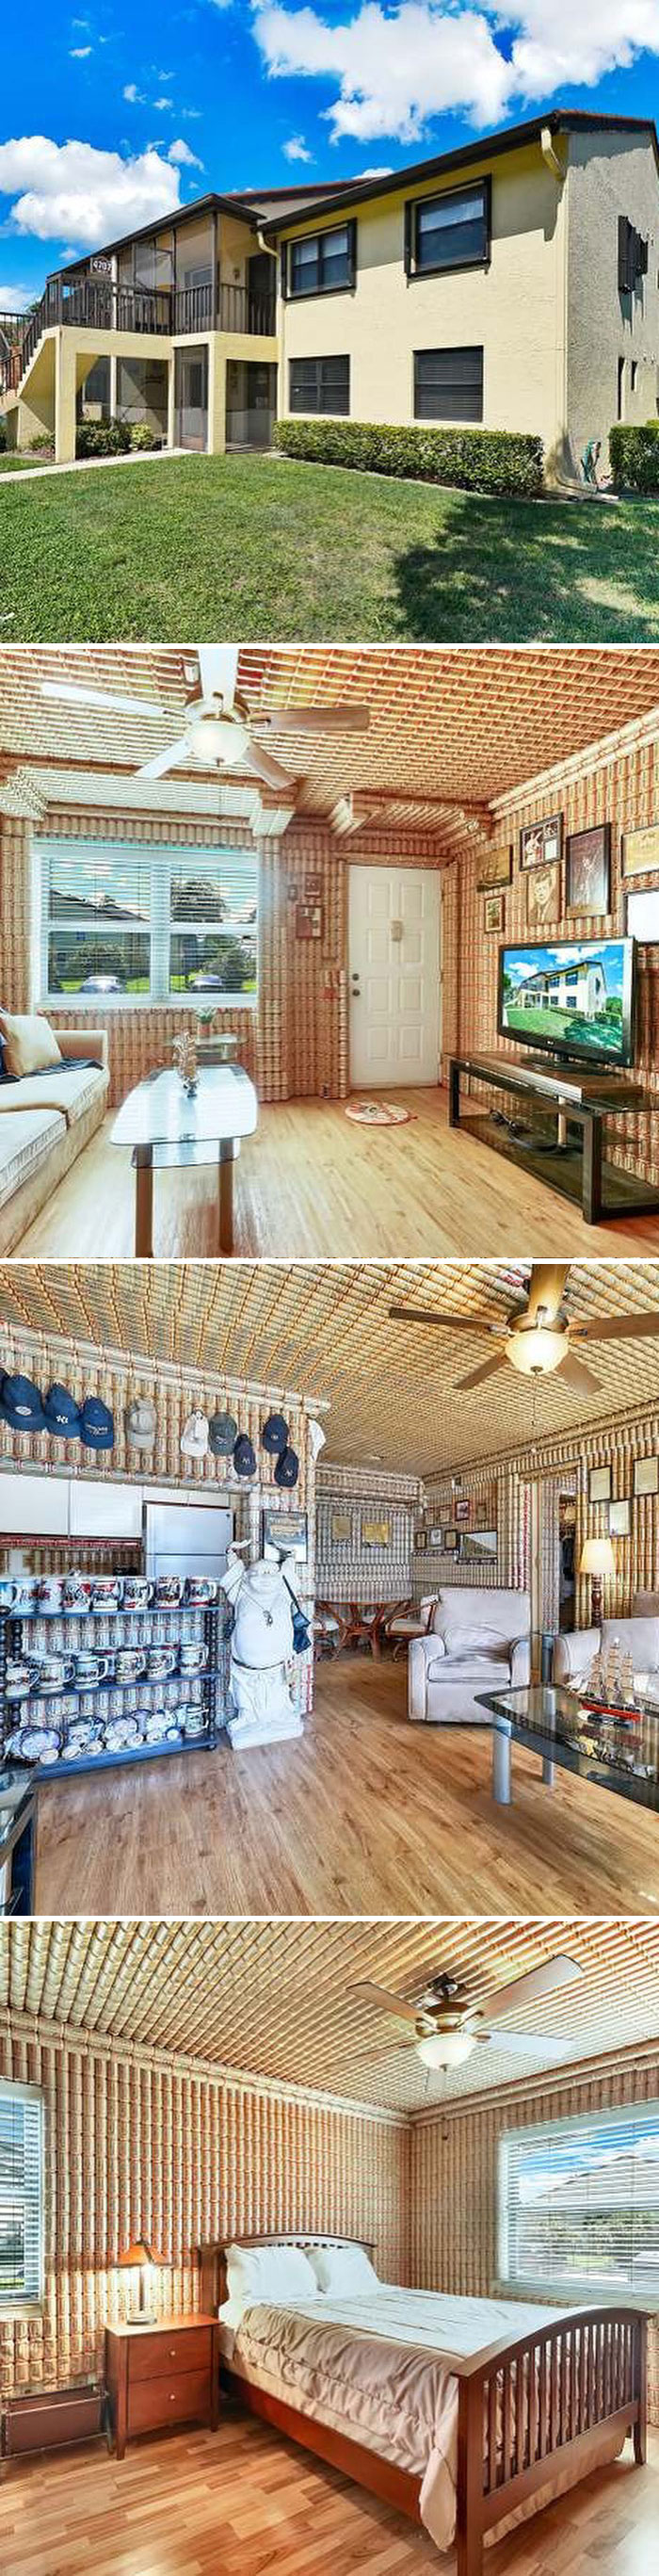 Who Needs A Mancave When You Can Have A Manhome? Recently Sold For 95,000. 2 Bd, 2 Ba. 815 Sf